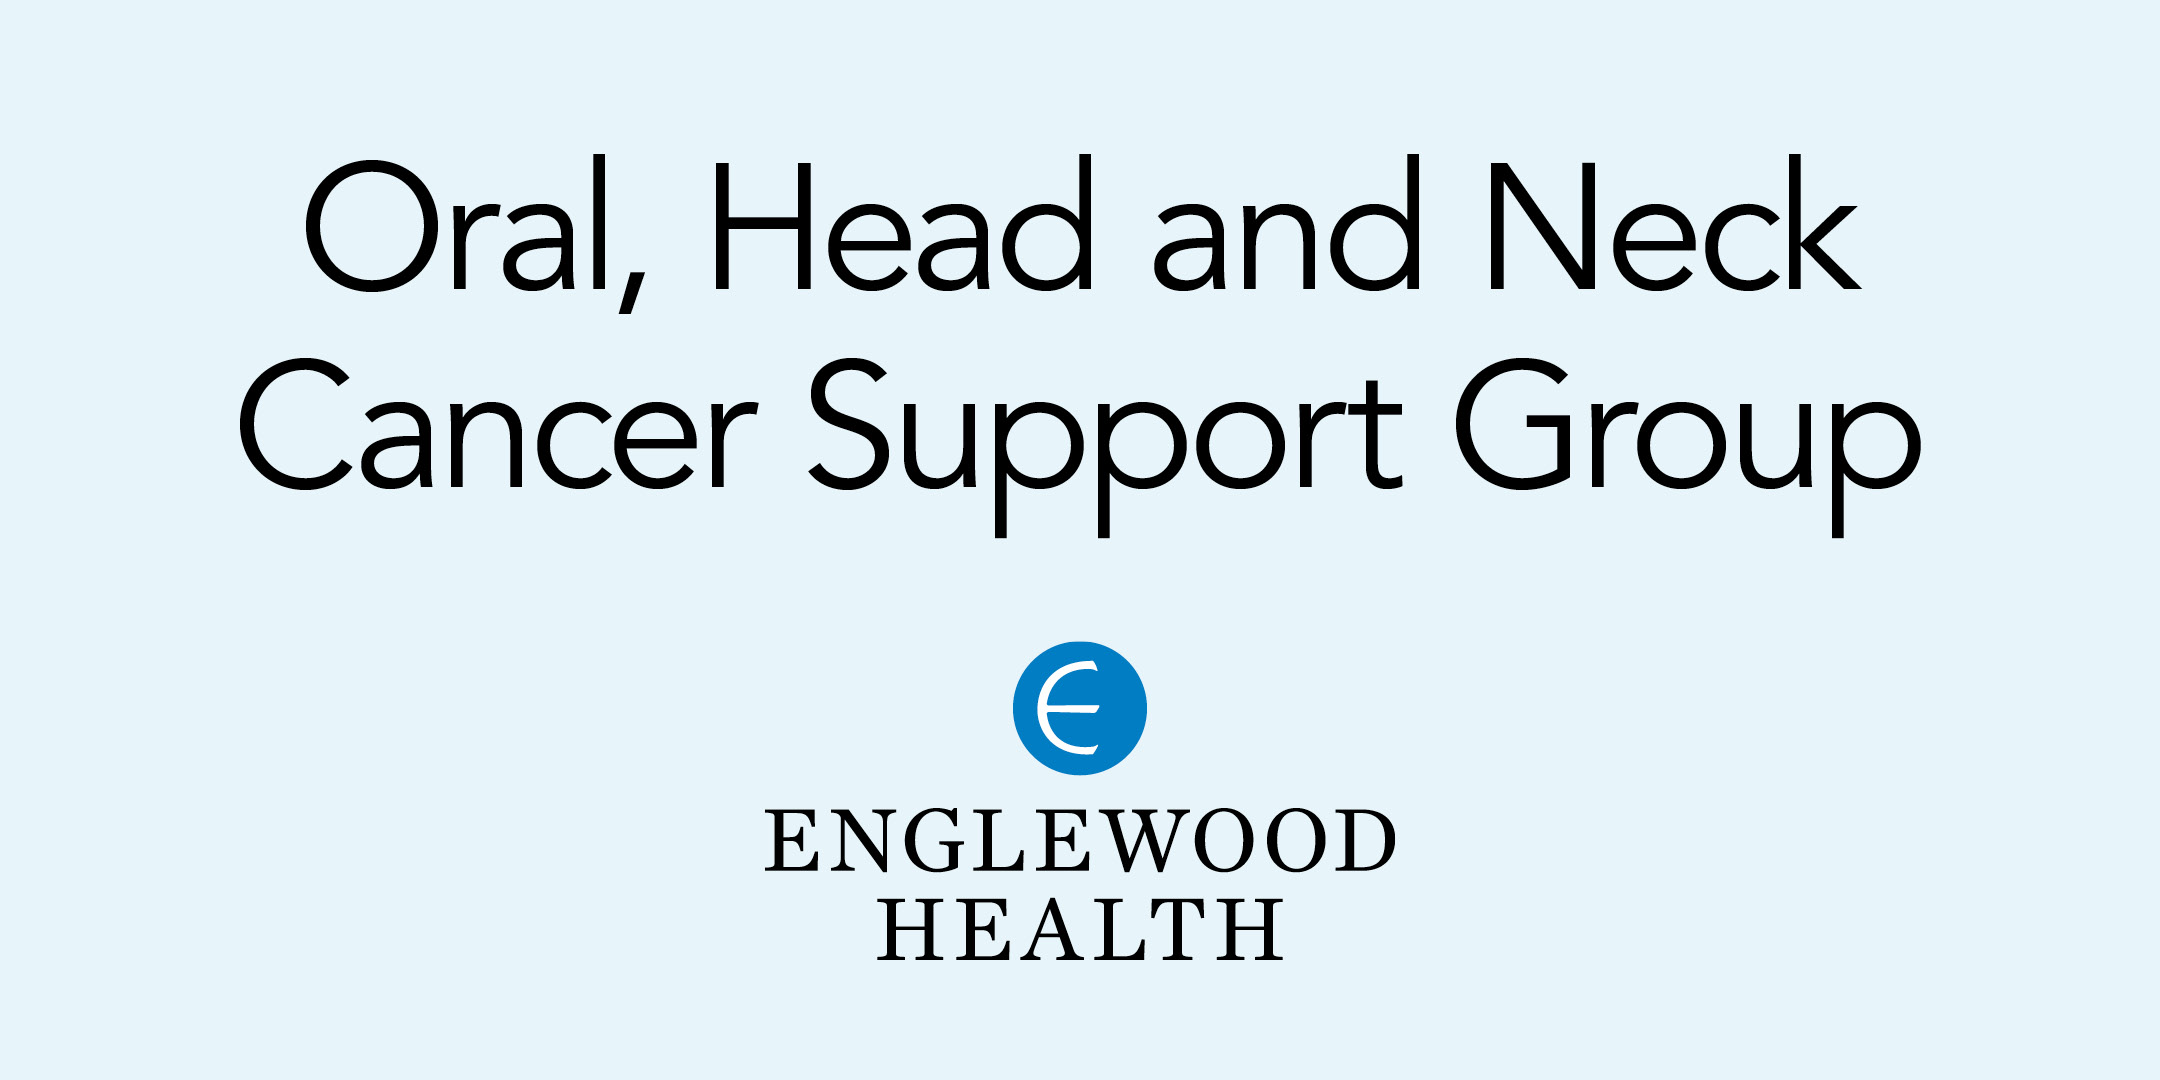 More info: Oral, Head and Neck Cancer Support Group